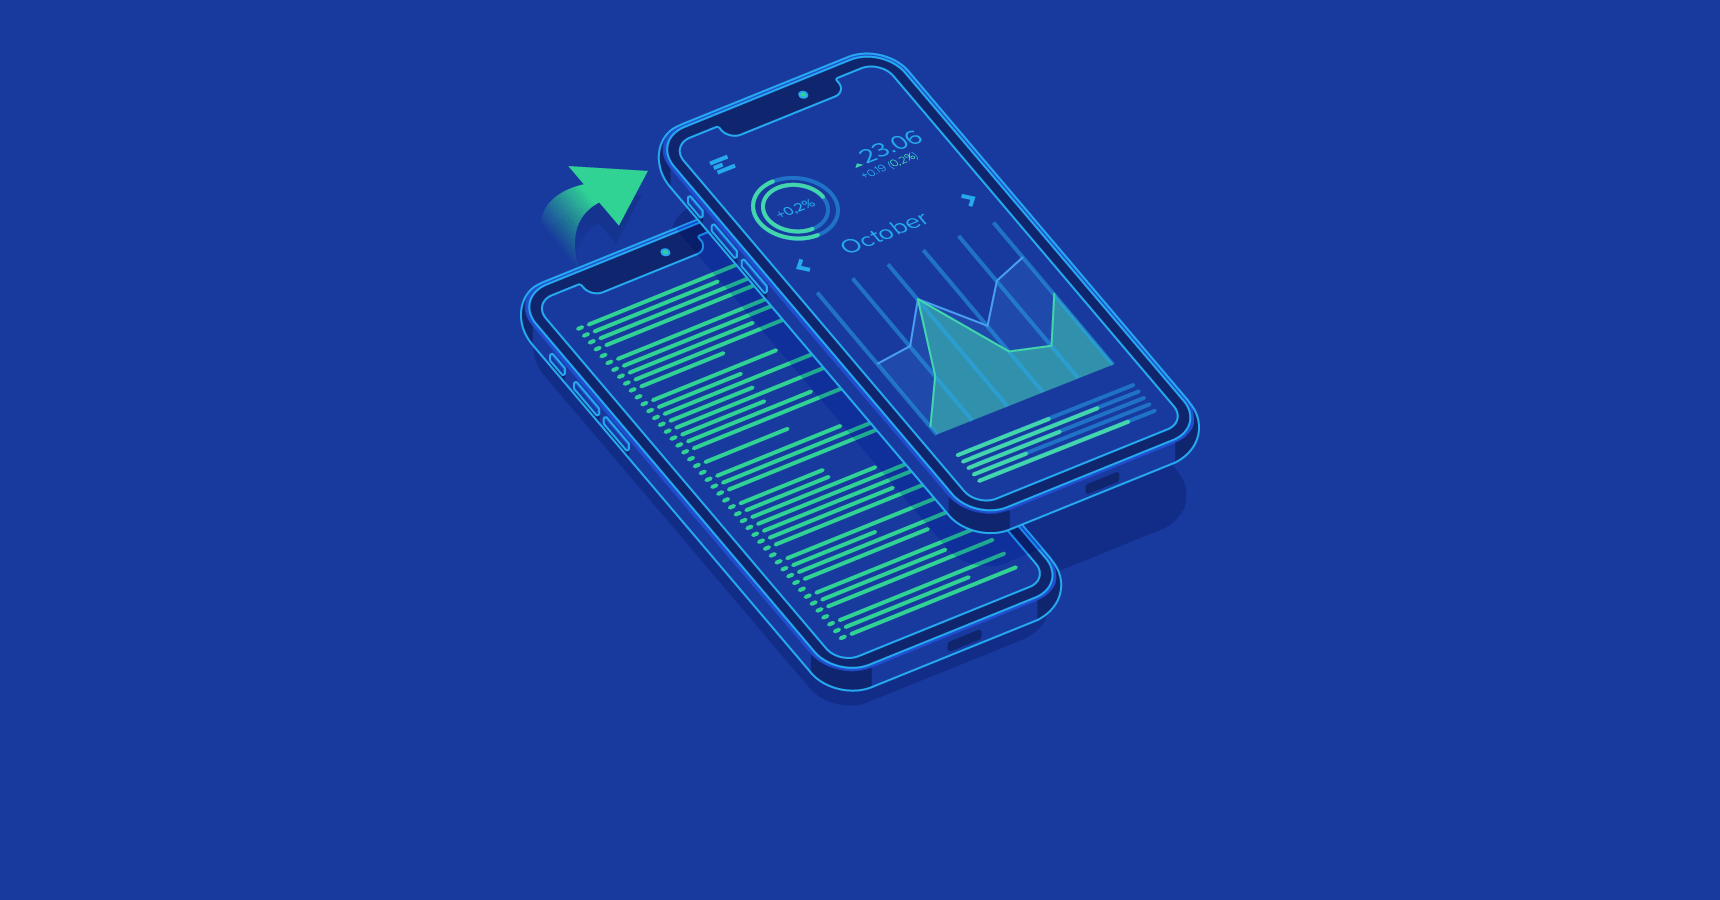 Cover illustration: Code and iPhone UI